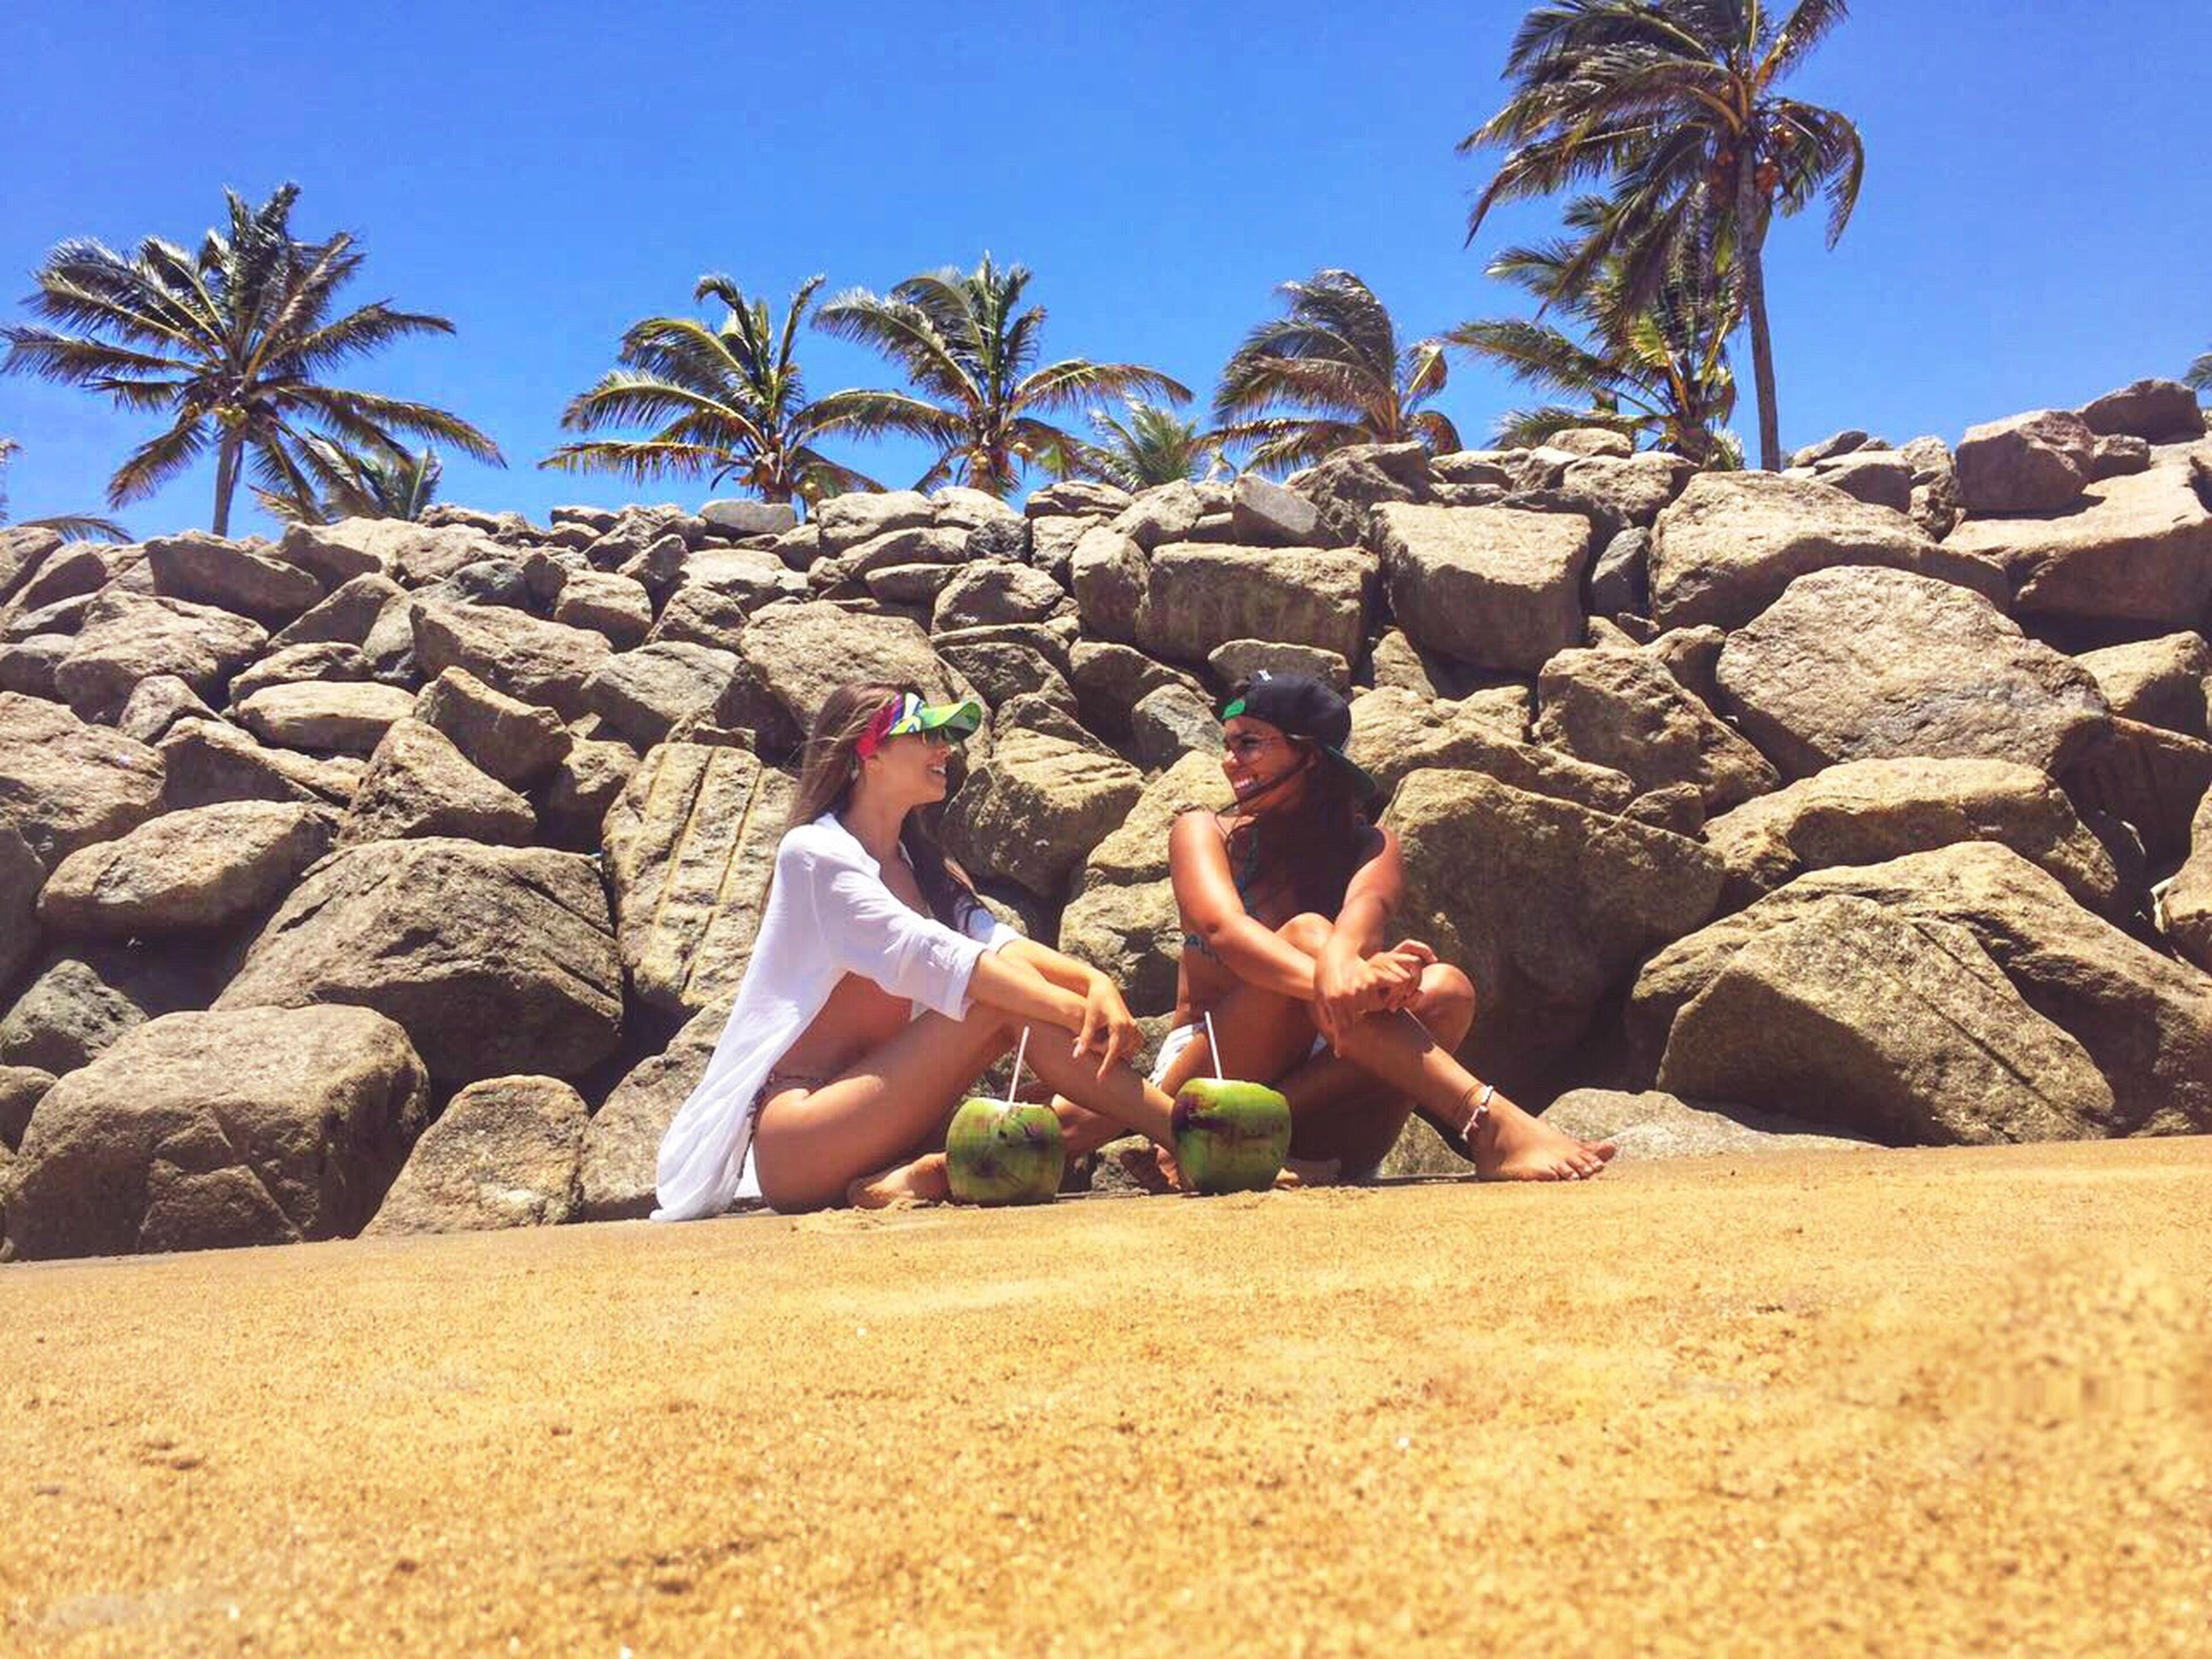 relaxation, vacations, sunlight, sitting, outdoors, two people, beach, togetherness, leisure activity, rock - object, palm tree, summer, day, sea, adults only, adult, nature, healthy eating, people, beauty in nature